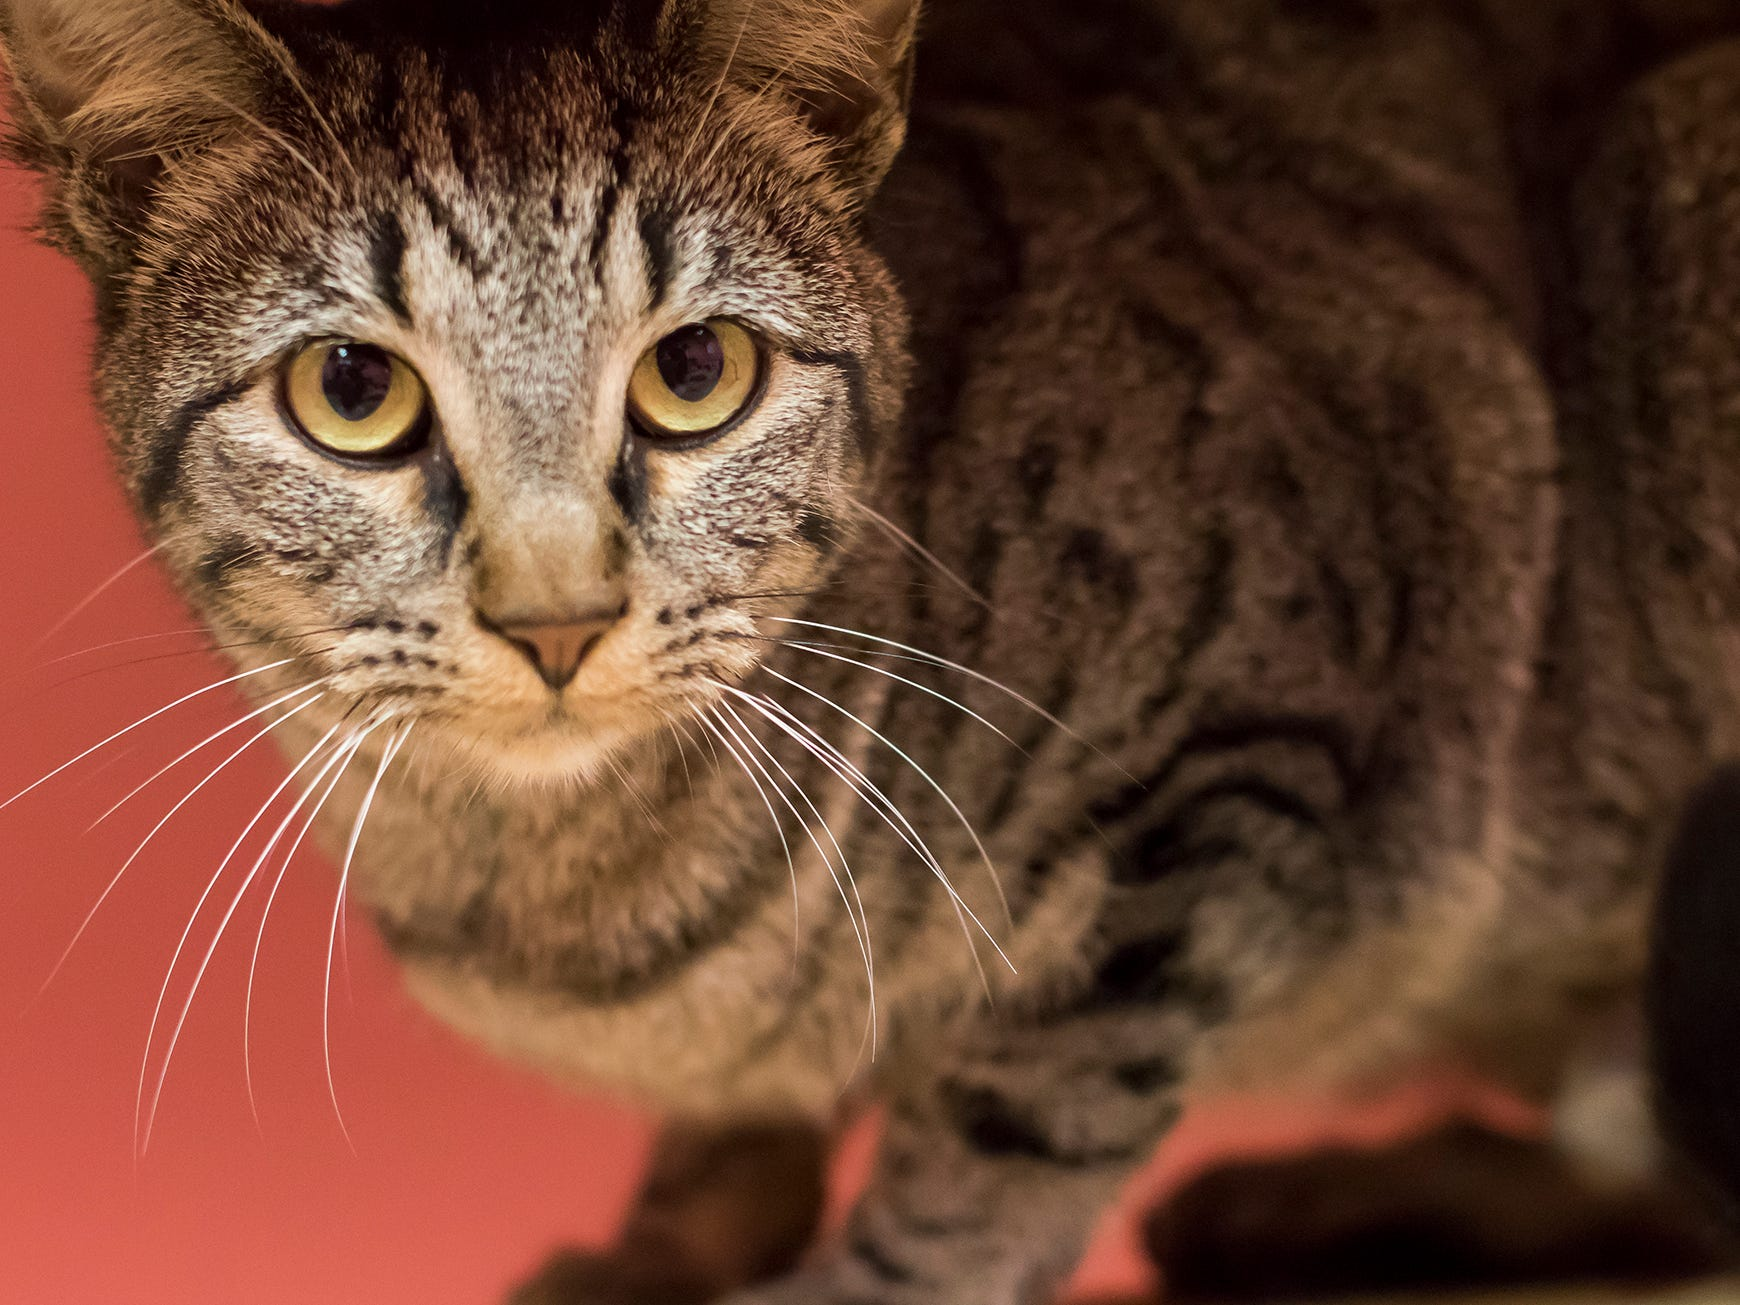 Fiona is a sweet, young cat who likes investigating.